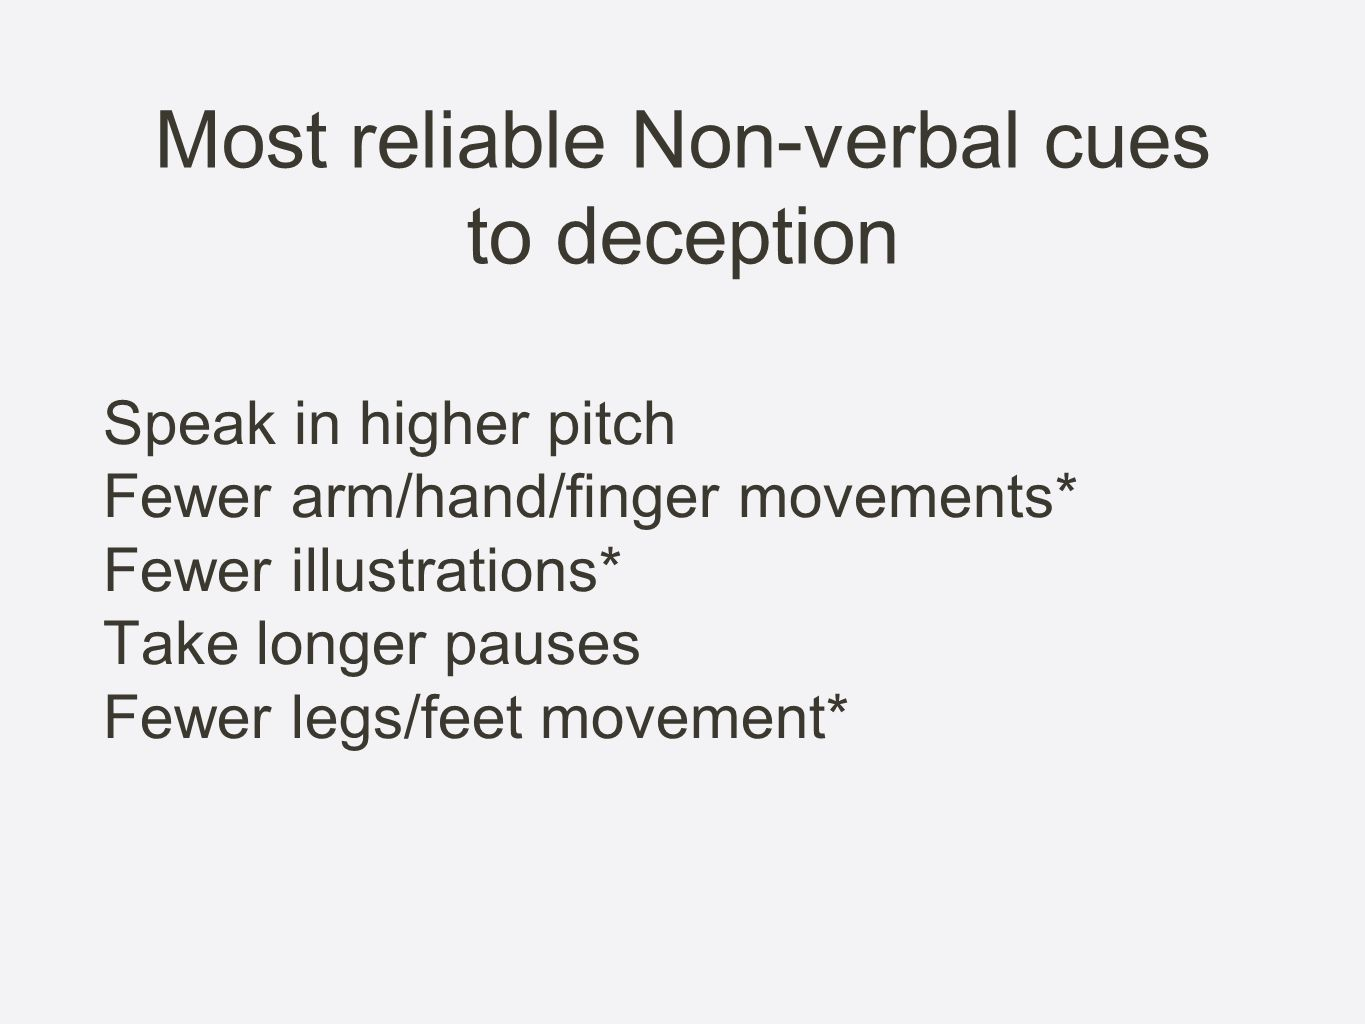 Most reliable Non-verbal cues to deception